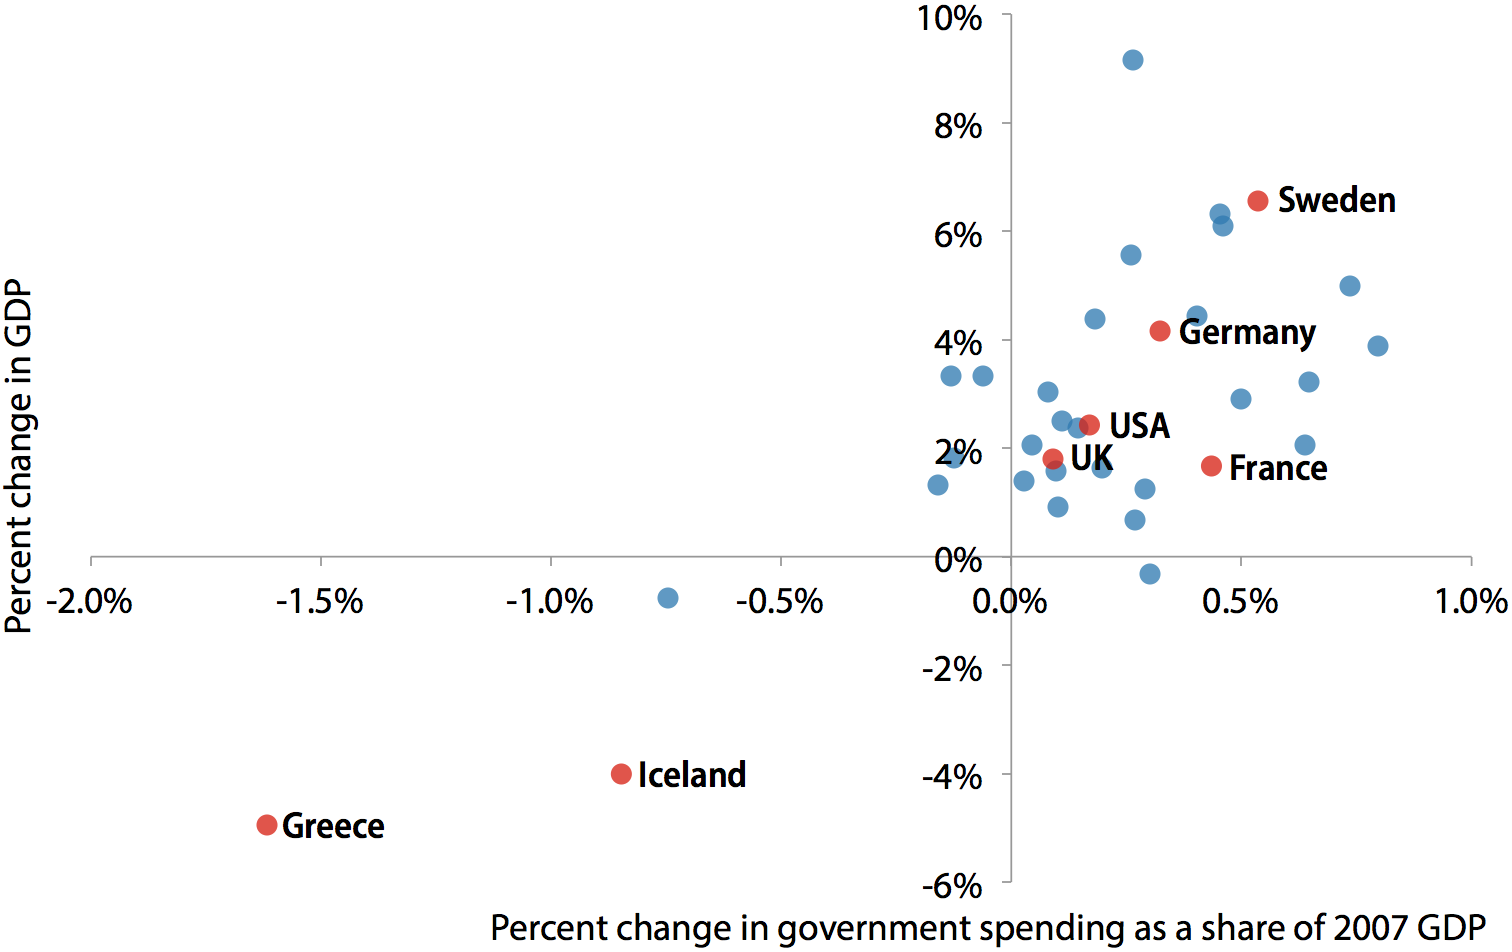 Change in government spending in developed countries as a share of 2007 GDP, and change in GDP, 2009–2010